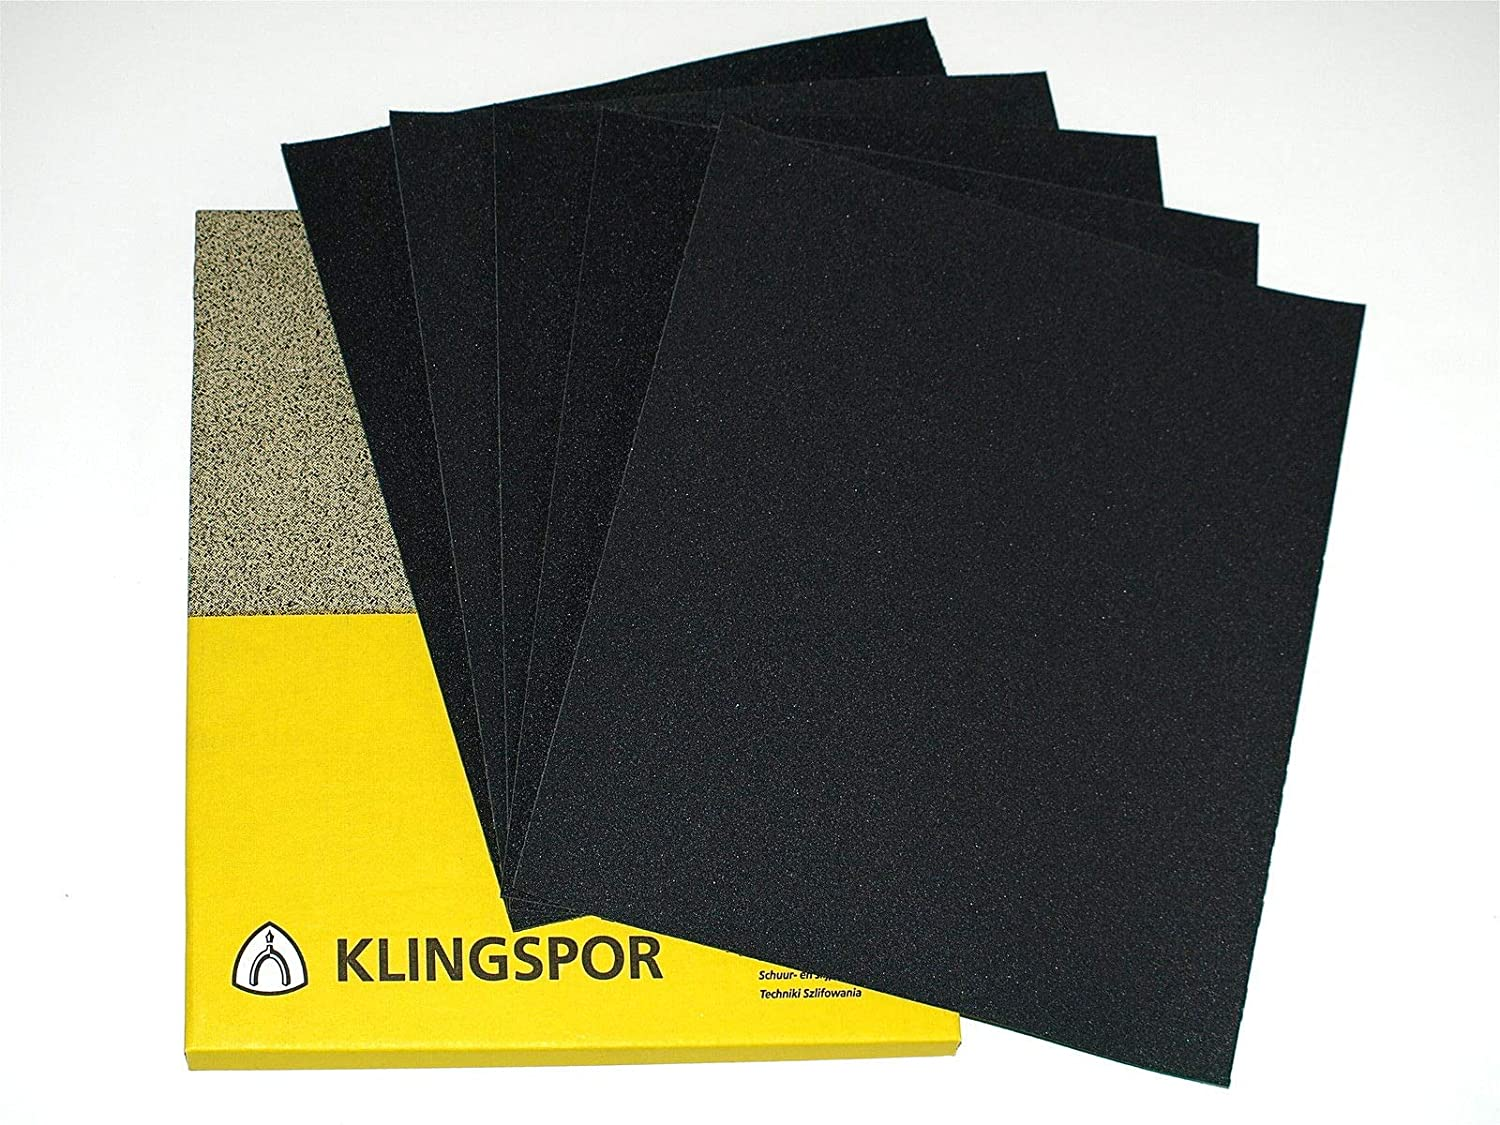 Wet and Dry Sandpaper 230 x 280mm Mixed Assorted GRIT 5 Sheets 1x 400 600 800 1000 1200 GRIT